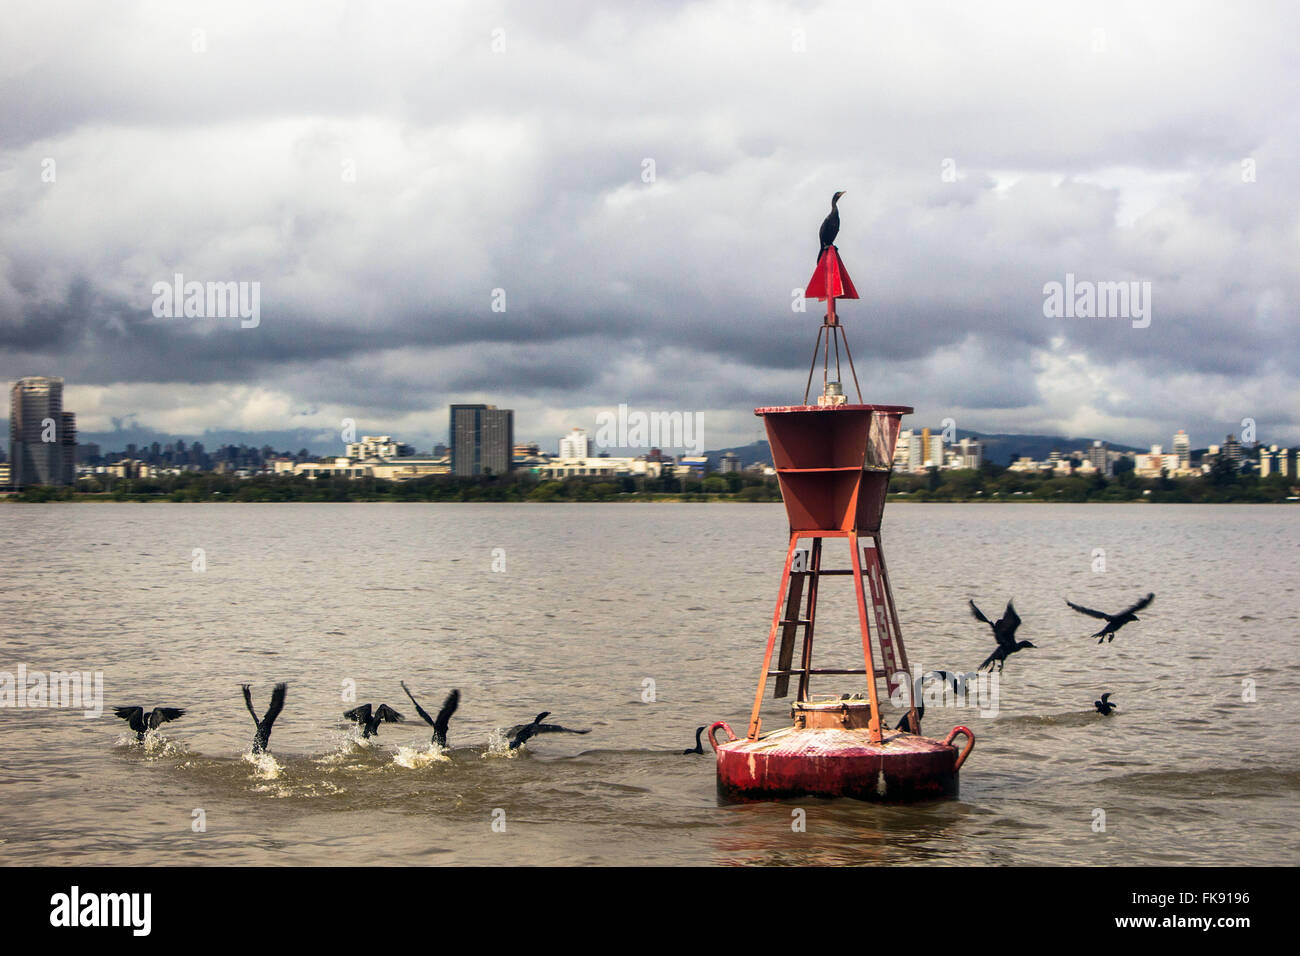 Birds along the Maritime Signal buoy on Lake Guaiba - Stock Image